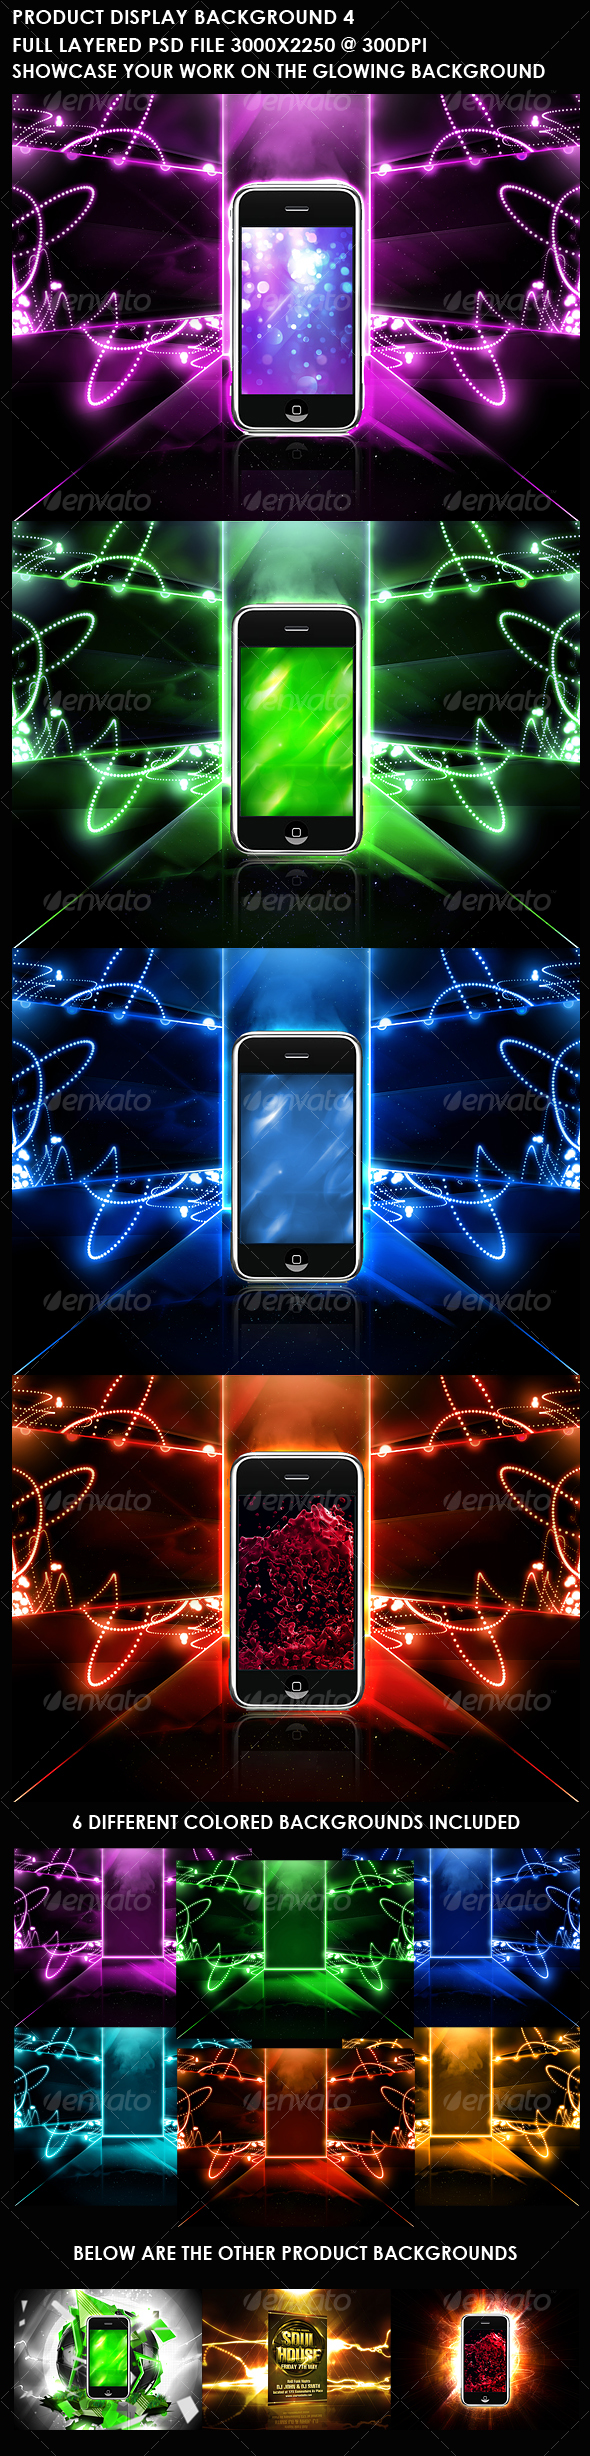 GraphicRiver Product Display Background 4 107642